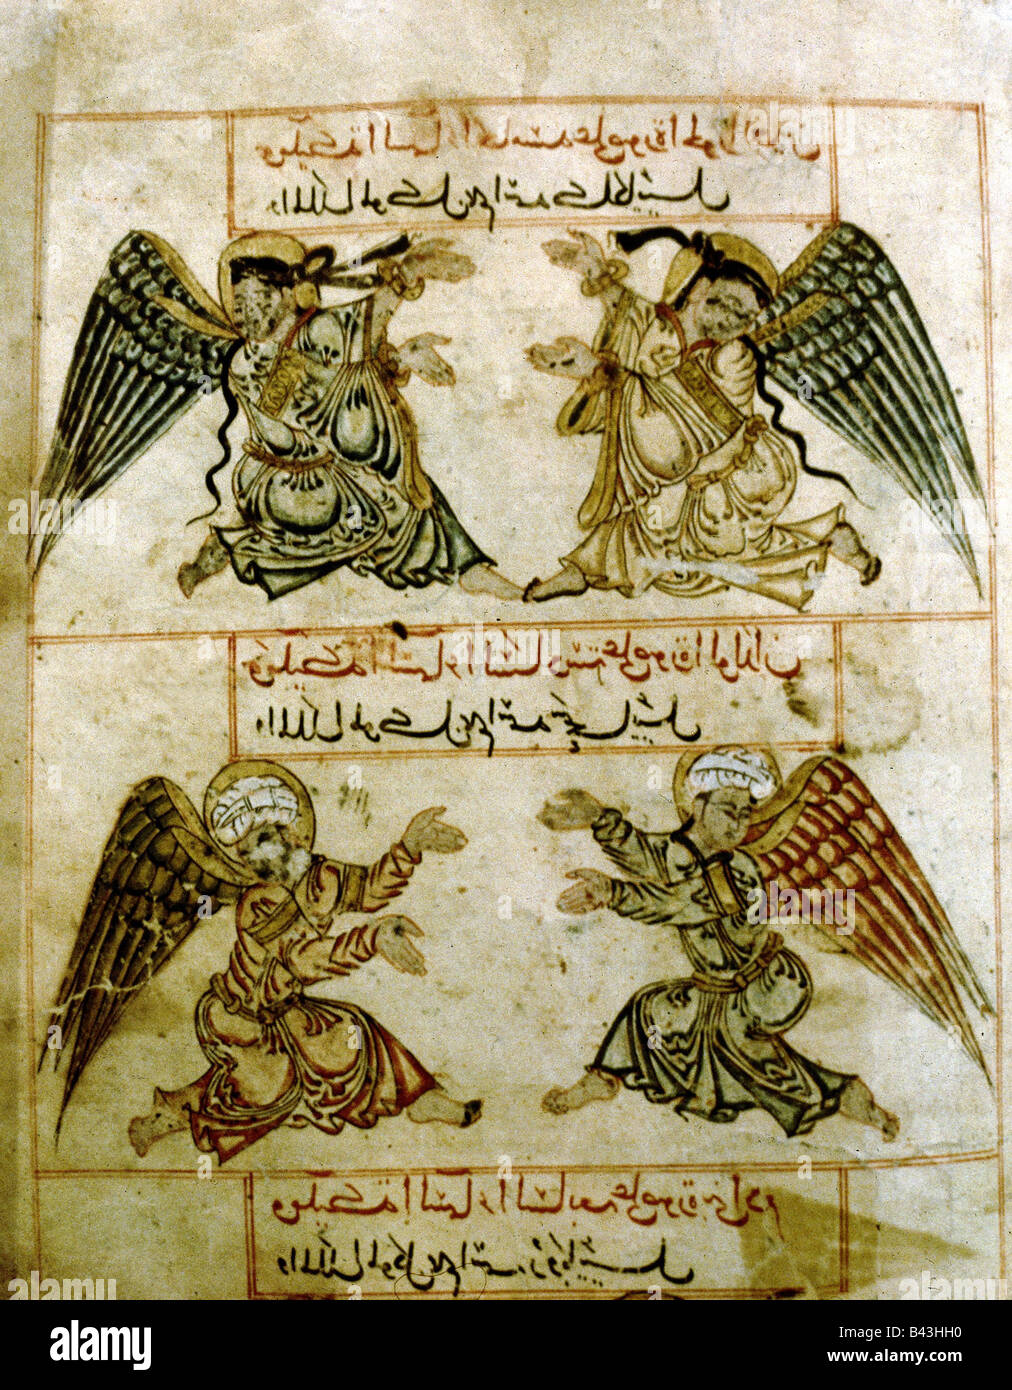 religion, Islam, four angels, book of wonder of creation, Persian miniature on vellum, parchment, late 13th century, - Stock Image